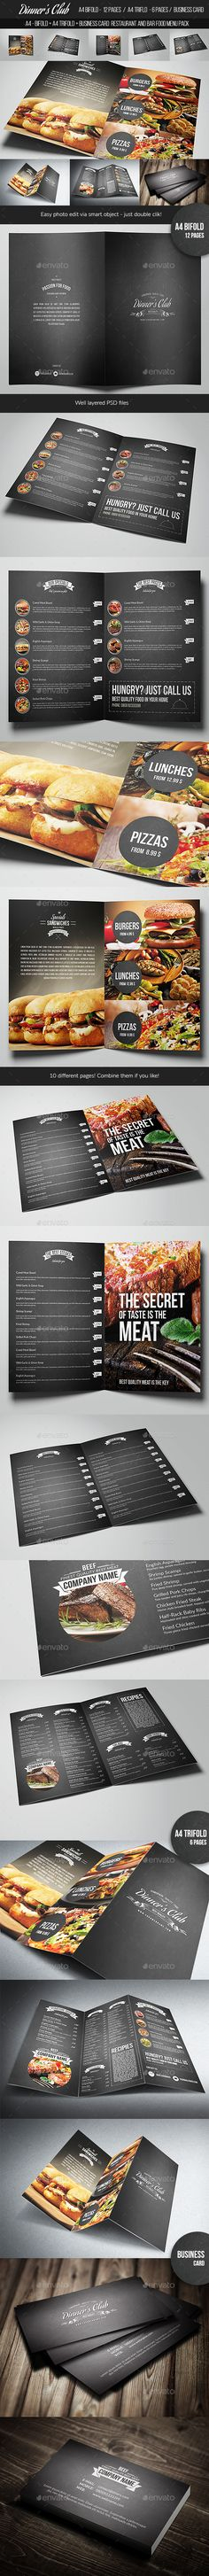 Restaurant and Bar Menu Pack Templates PSD #design Download: http://graphicriver.net/item/restaurant-and-bar-menu-pack/14293488?ref=ksioks